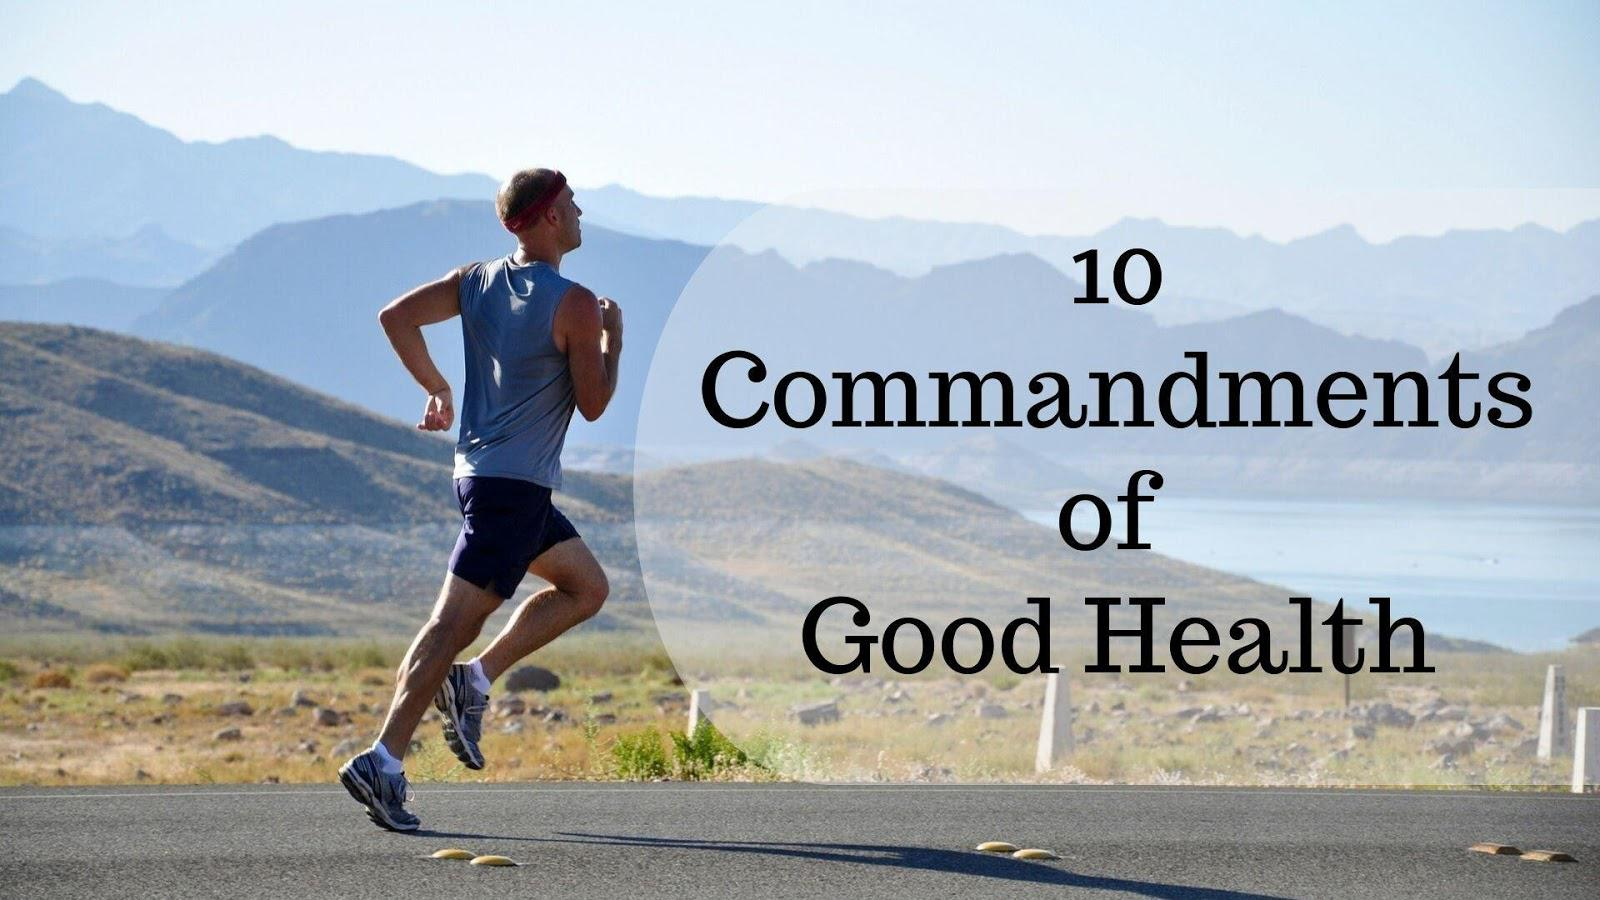 10 Commandments of Good Health